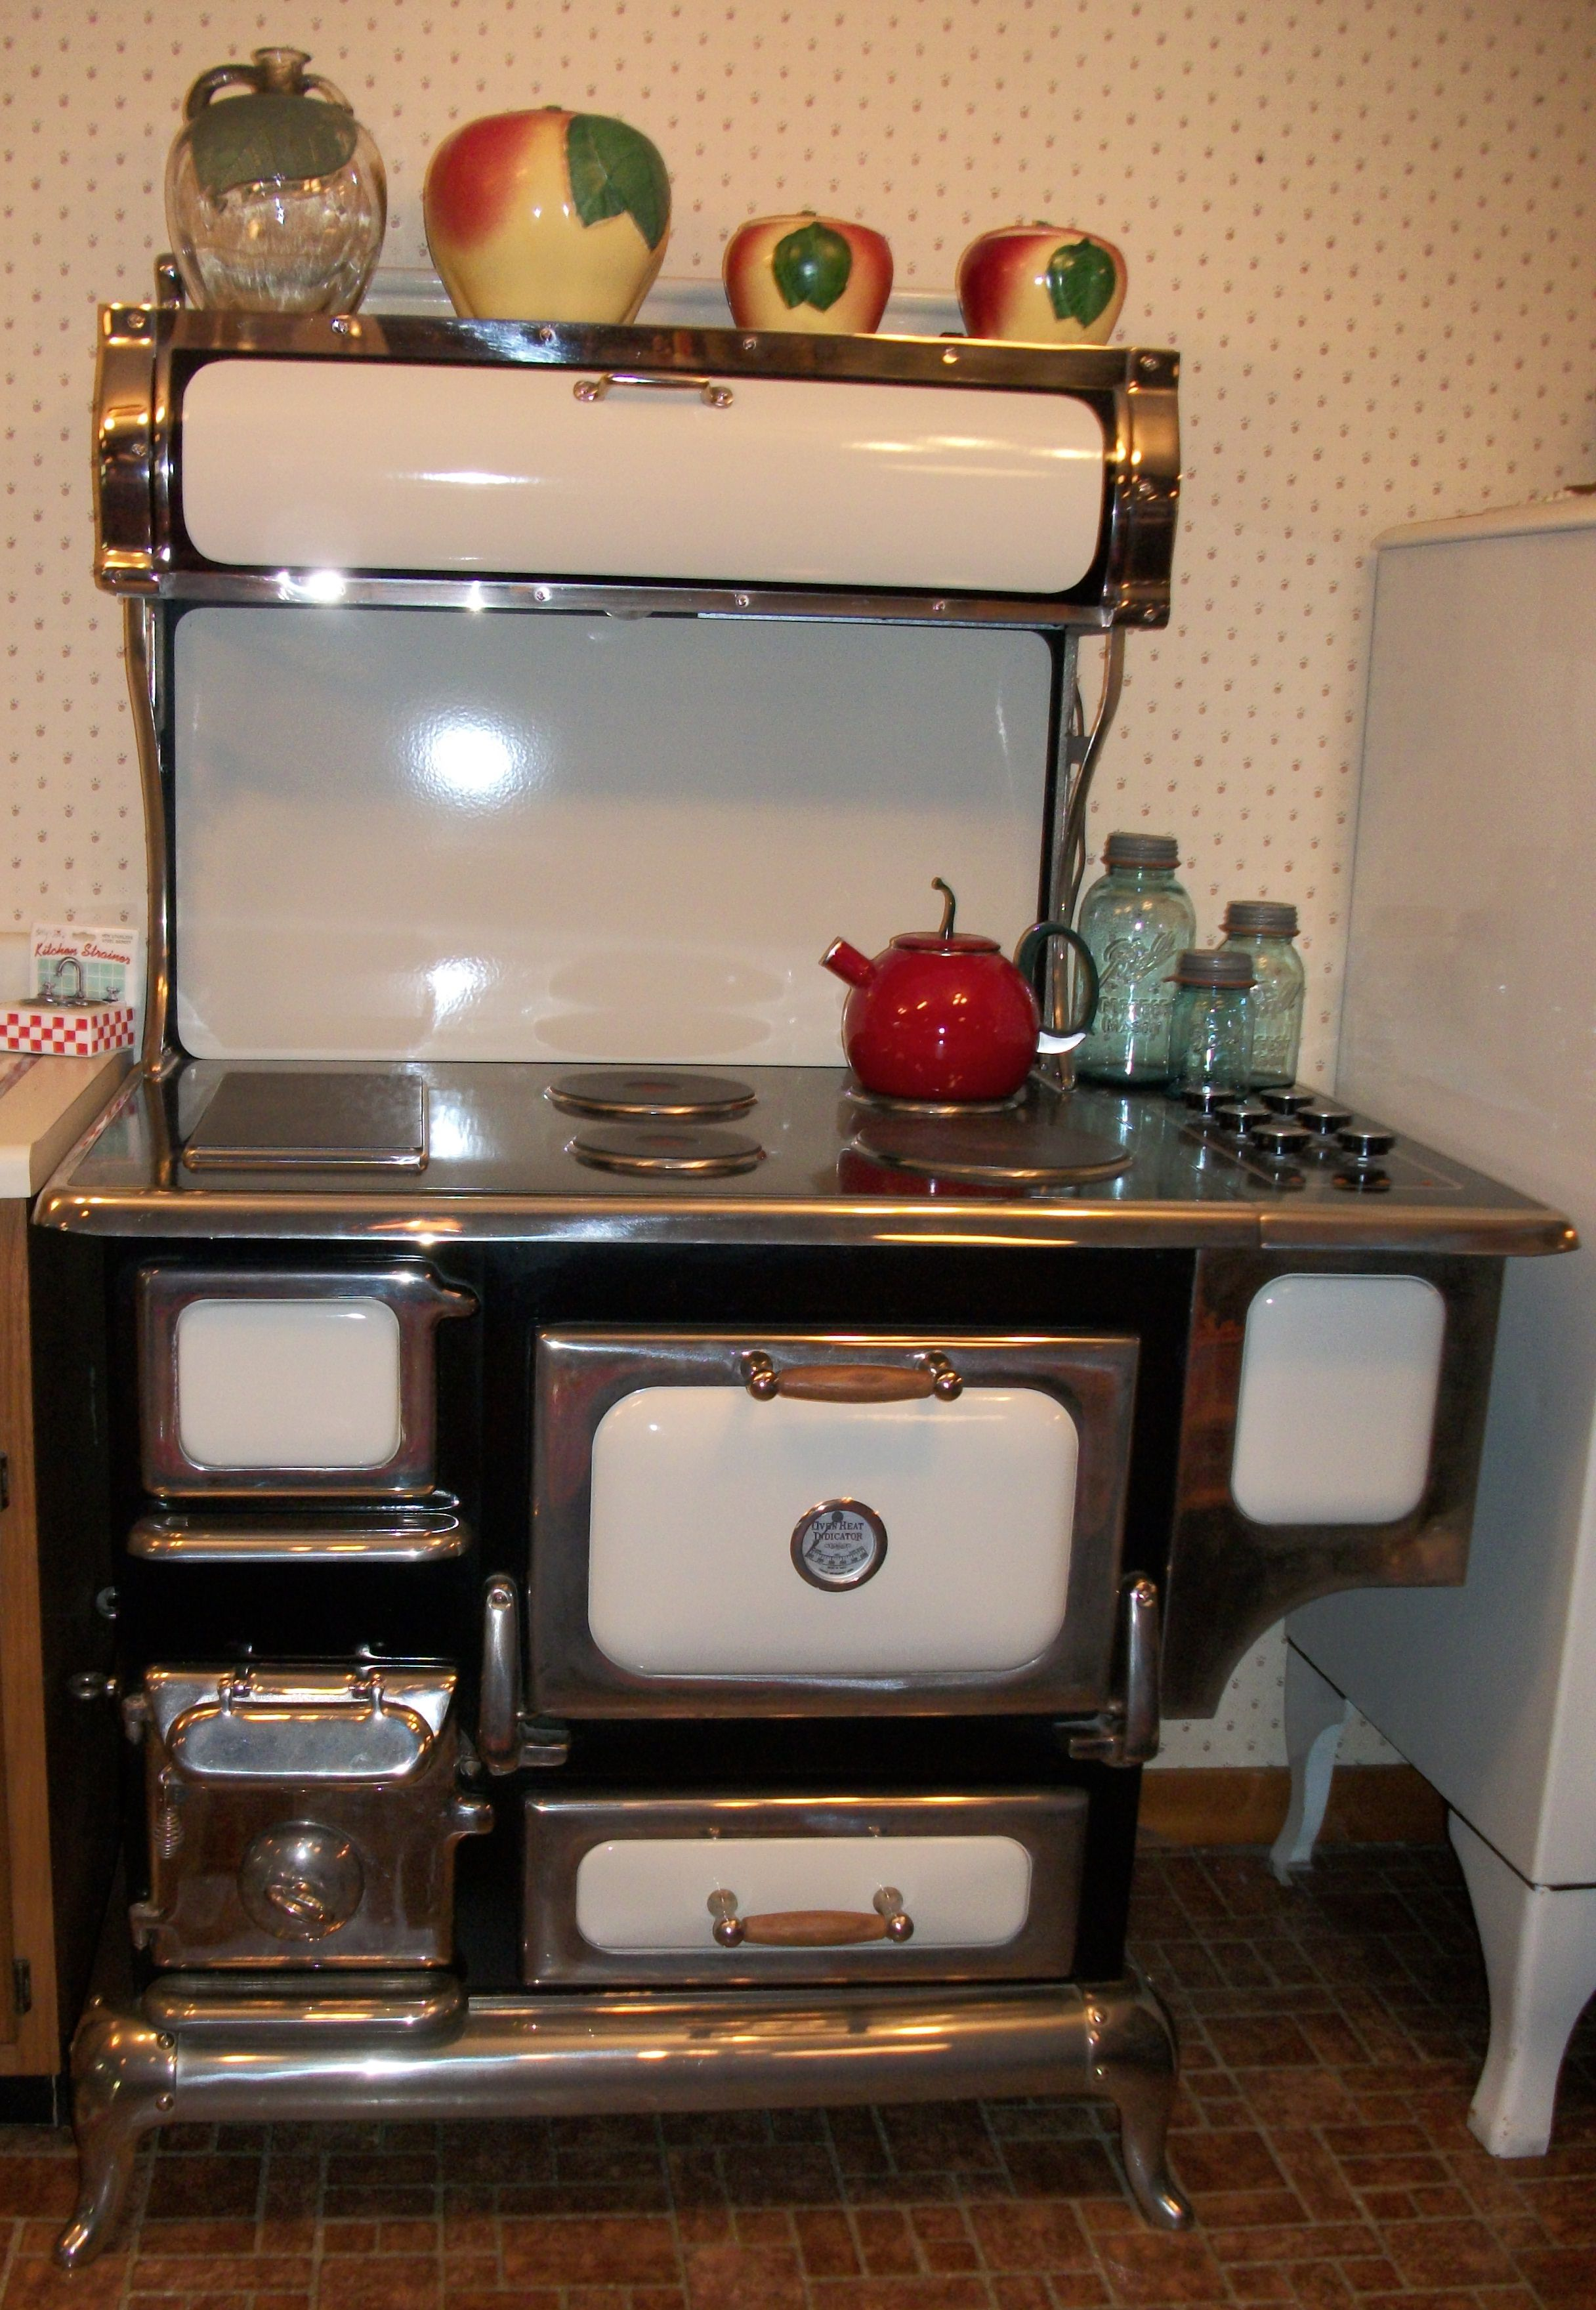 Uncategorized Antique Kitchen Appliances red antique stove fully restored for sale 1308 love this stove